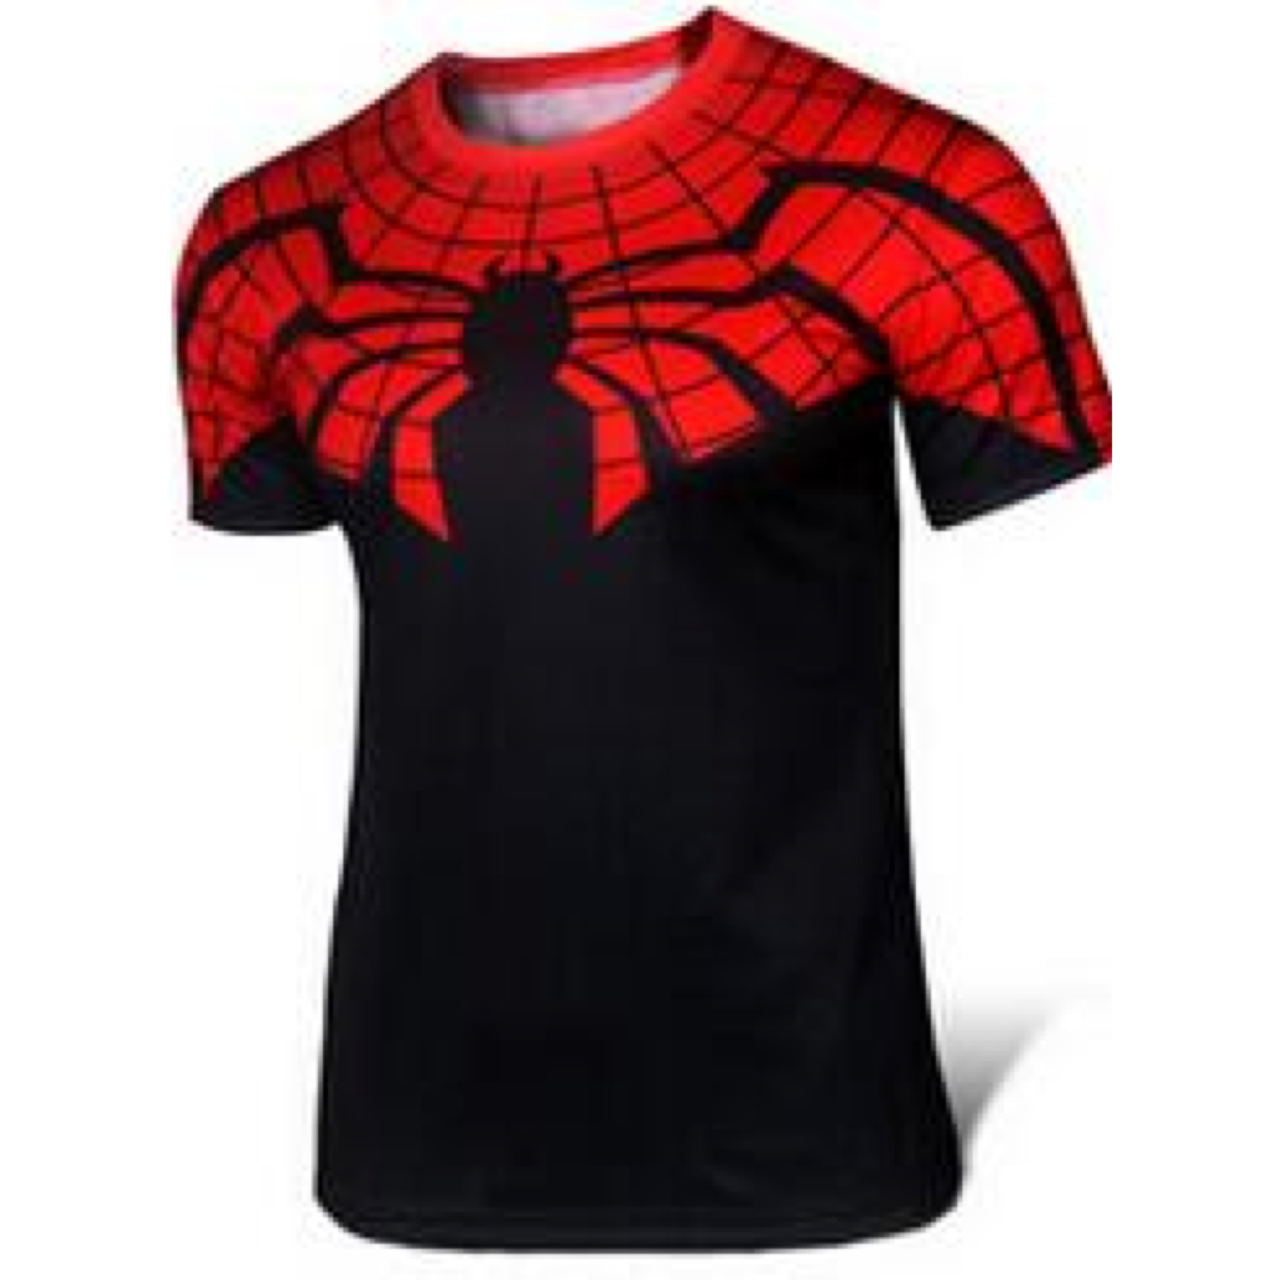 Kaos Superhero Spiderman Black and Red Dewasa